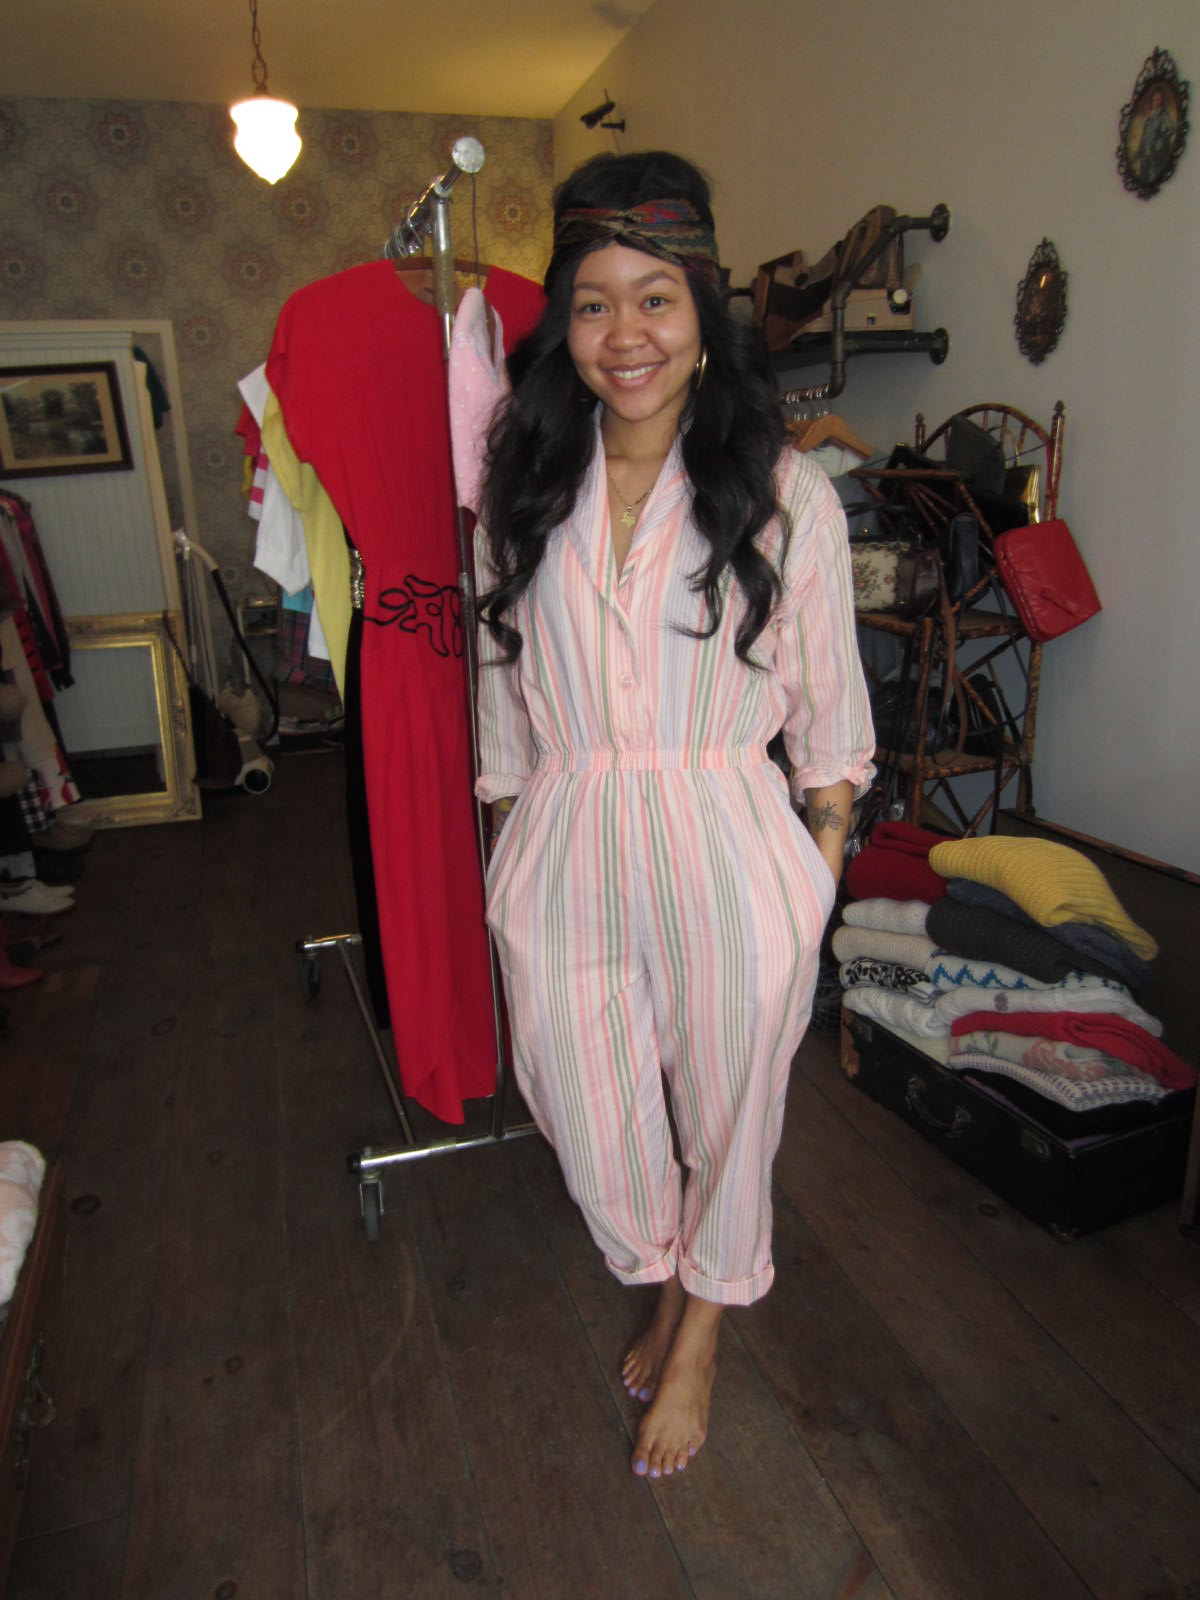 Jump into a Jumpsuit for Spring! Spring pieces on the floor by this weekend…Our model Sophie is wearing what's to come!